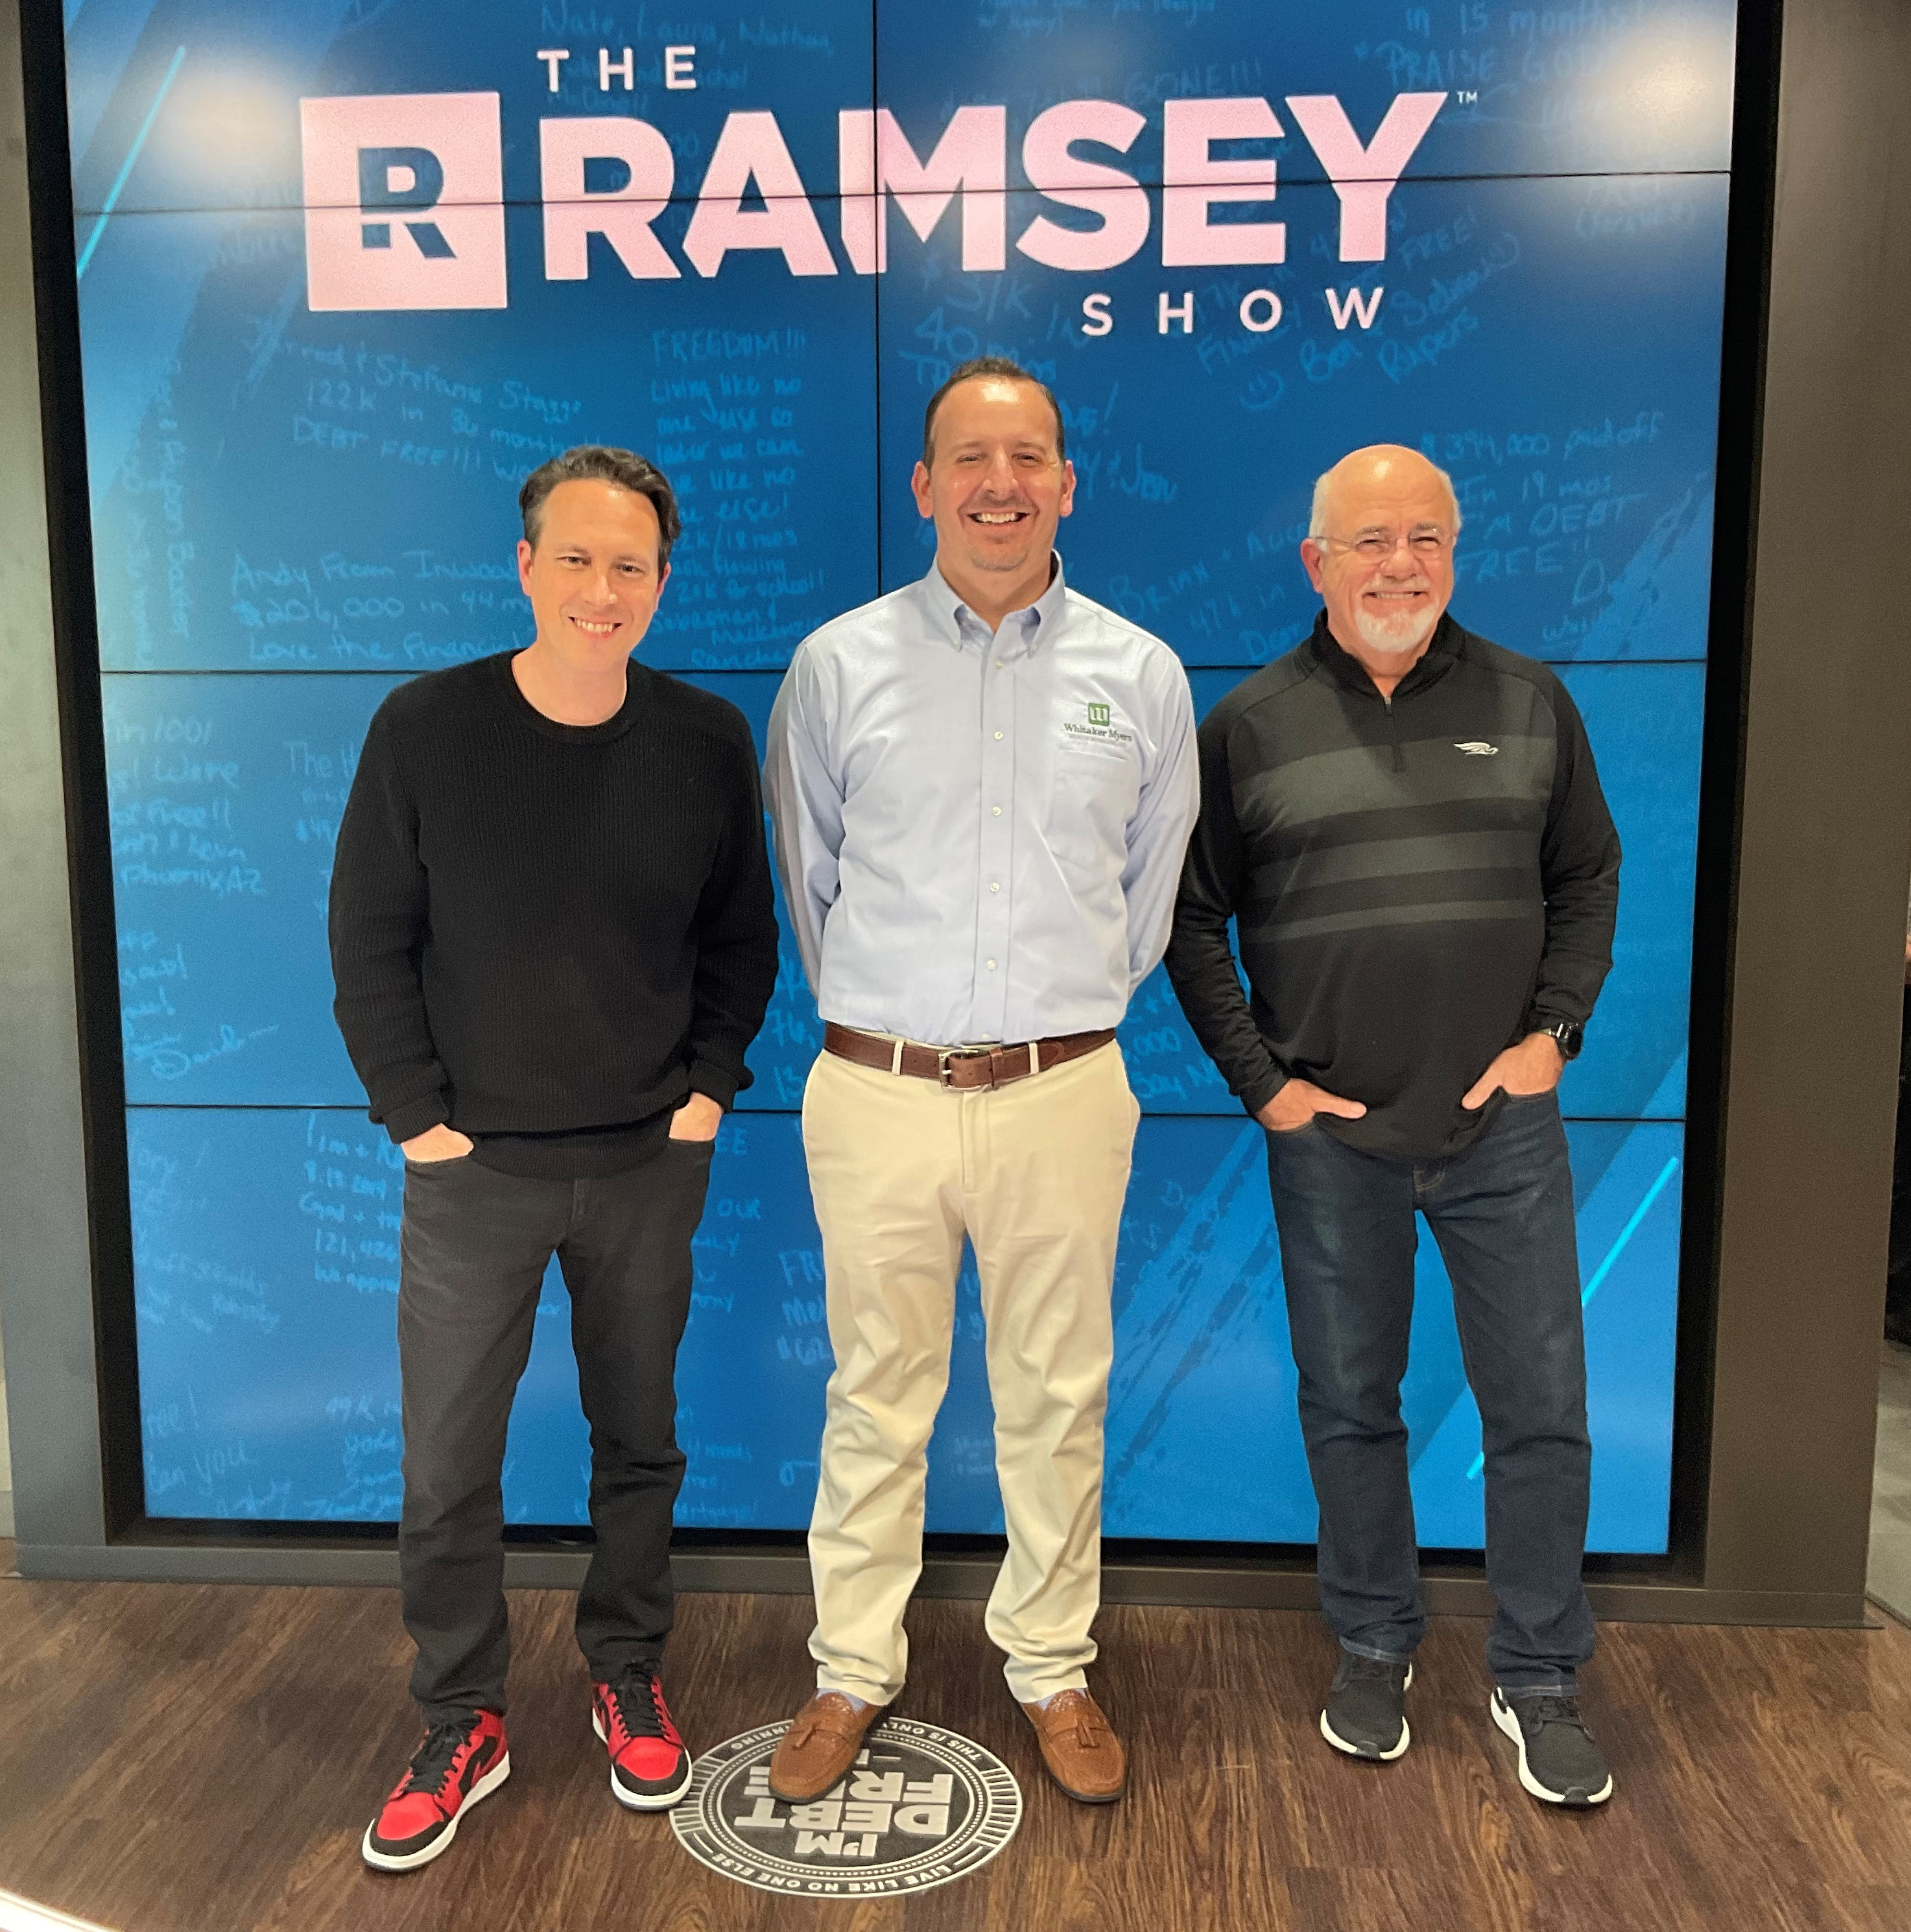 John-mark Young, financial advisor Cuyahoga Falls OH